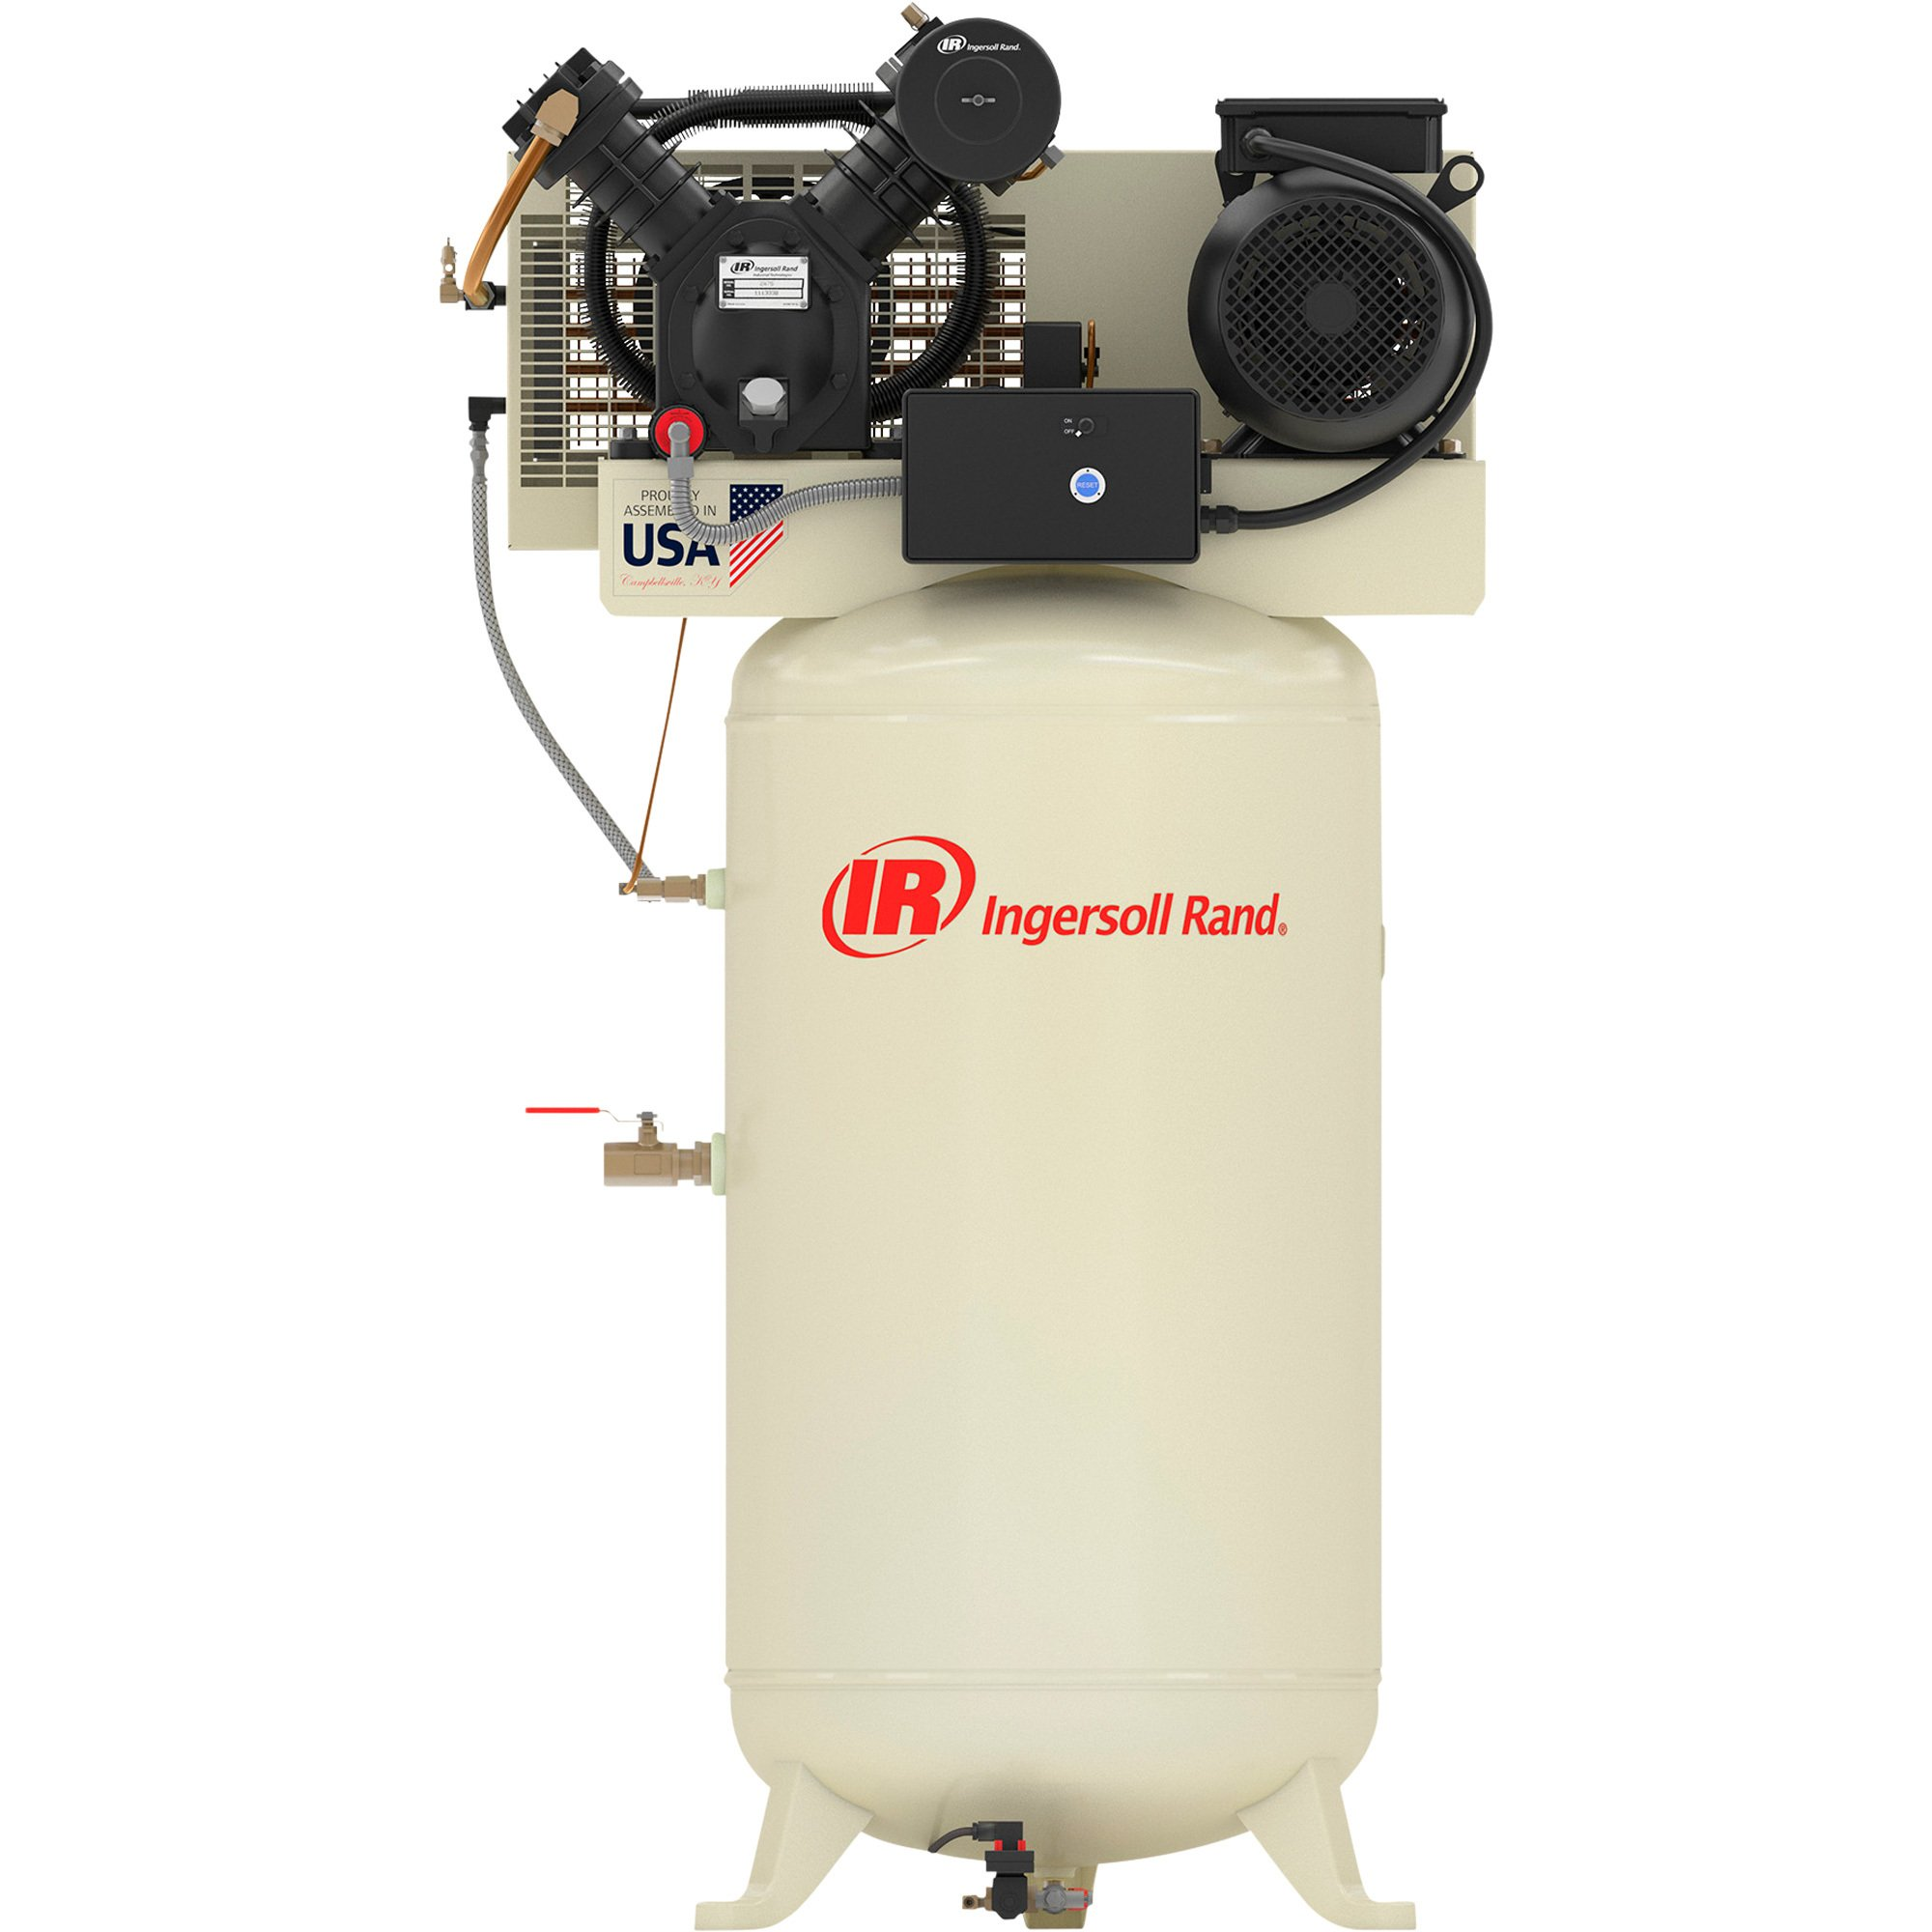 ingersoll rand type 30 reciprocating air compressor (fully packagedingersoll rand type 30 reciprocating air compressor (fully packaged) \u2014 7 5 hp,